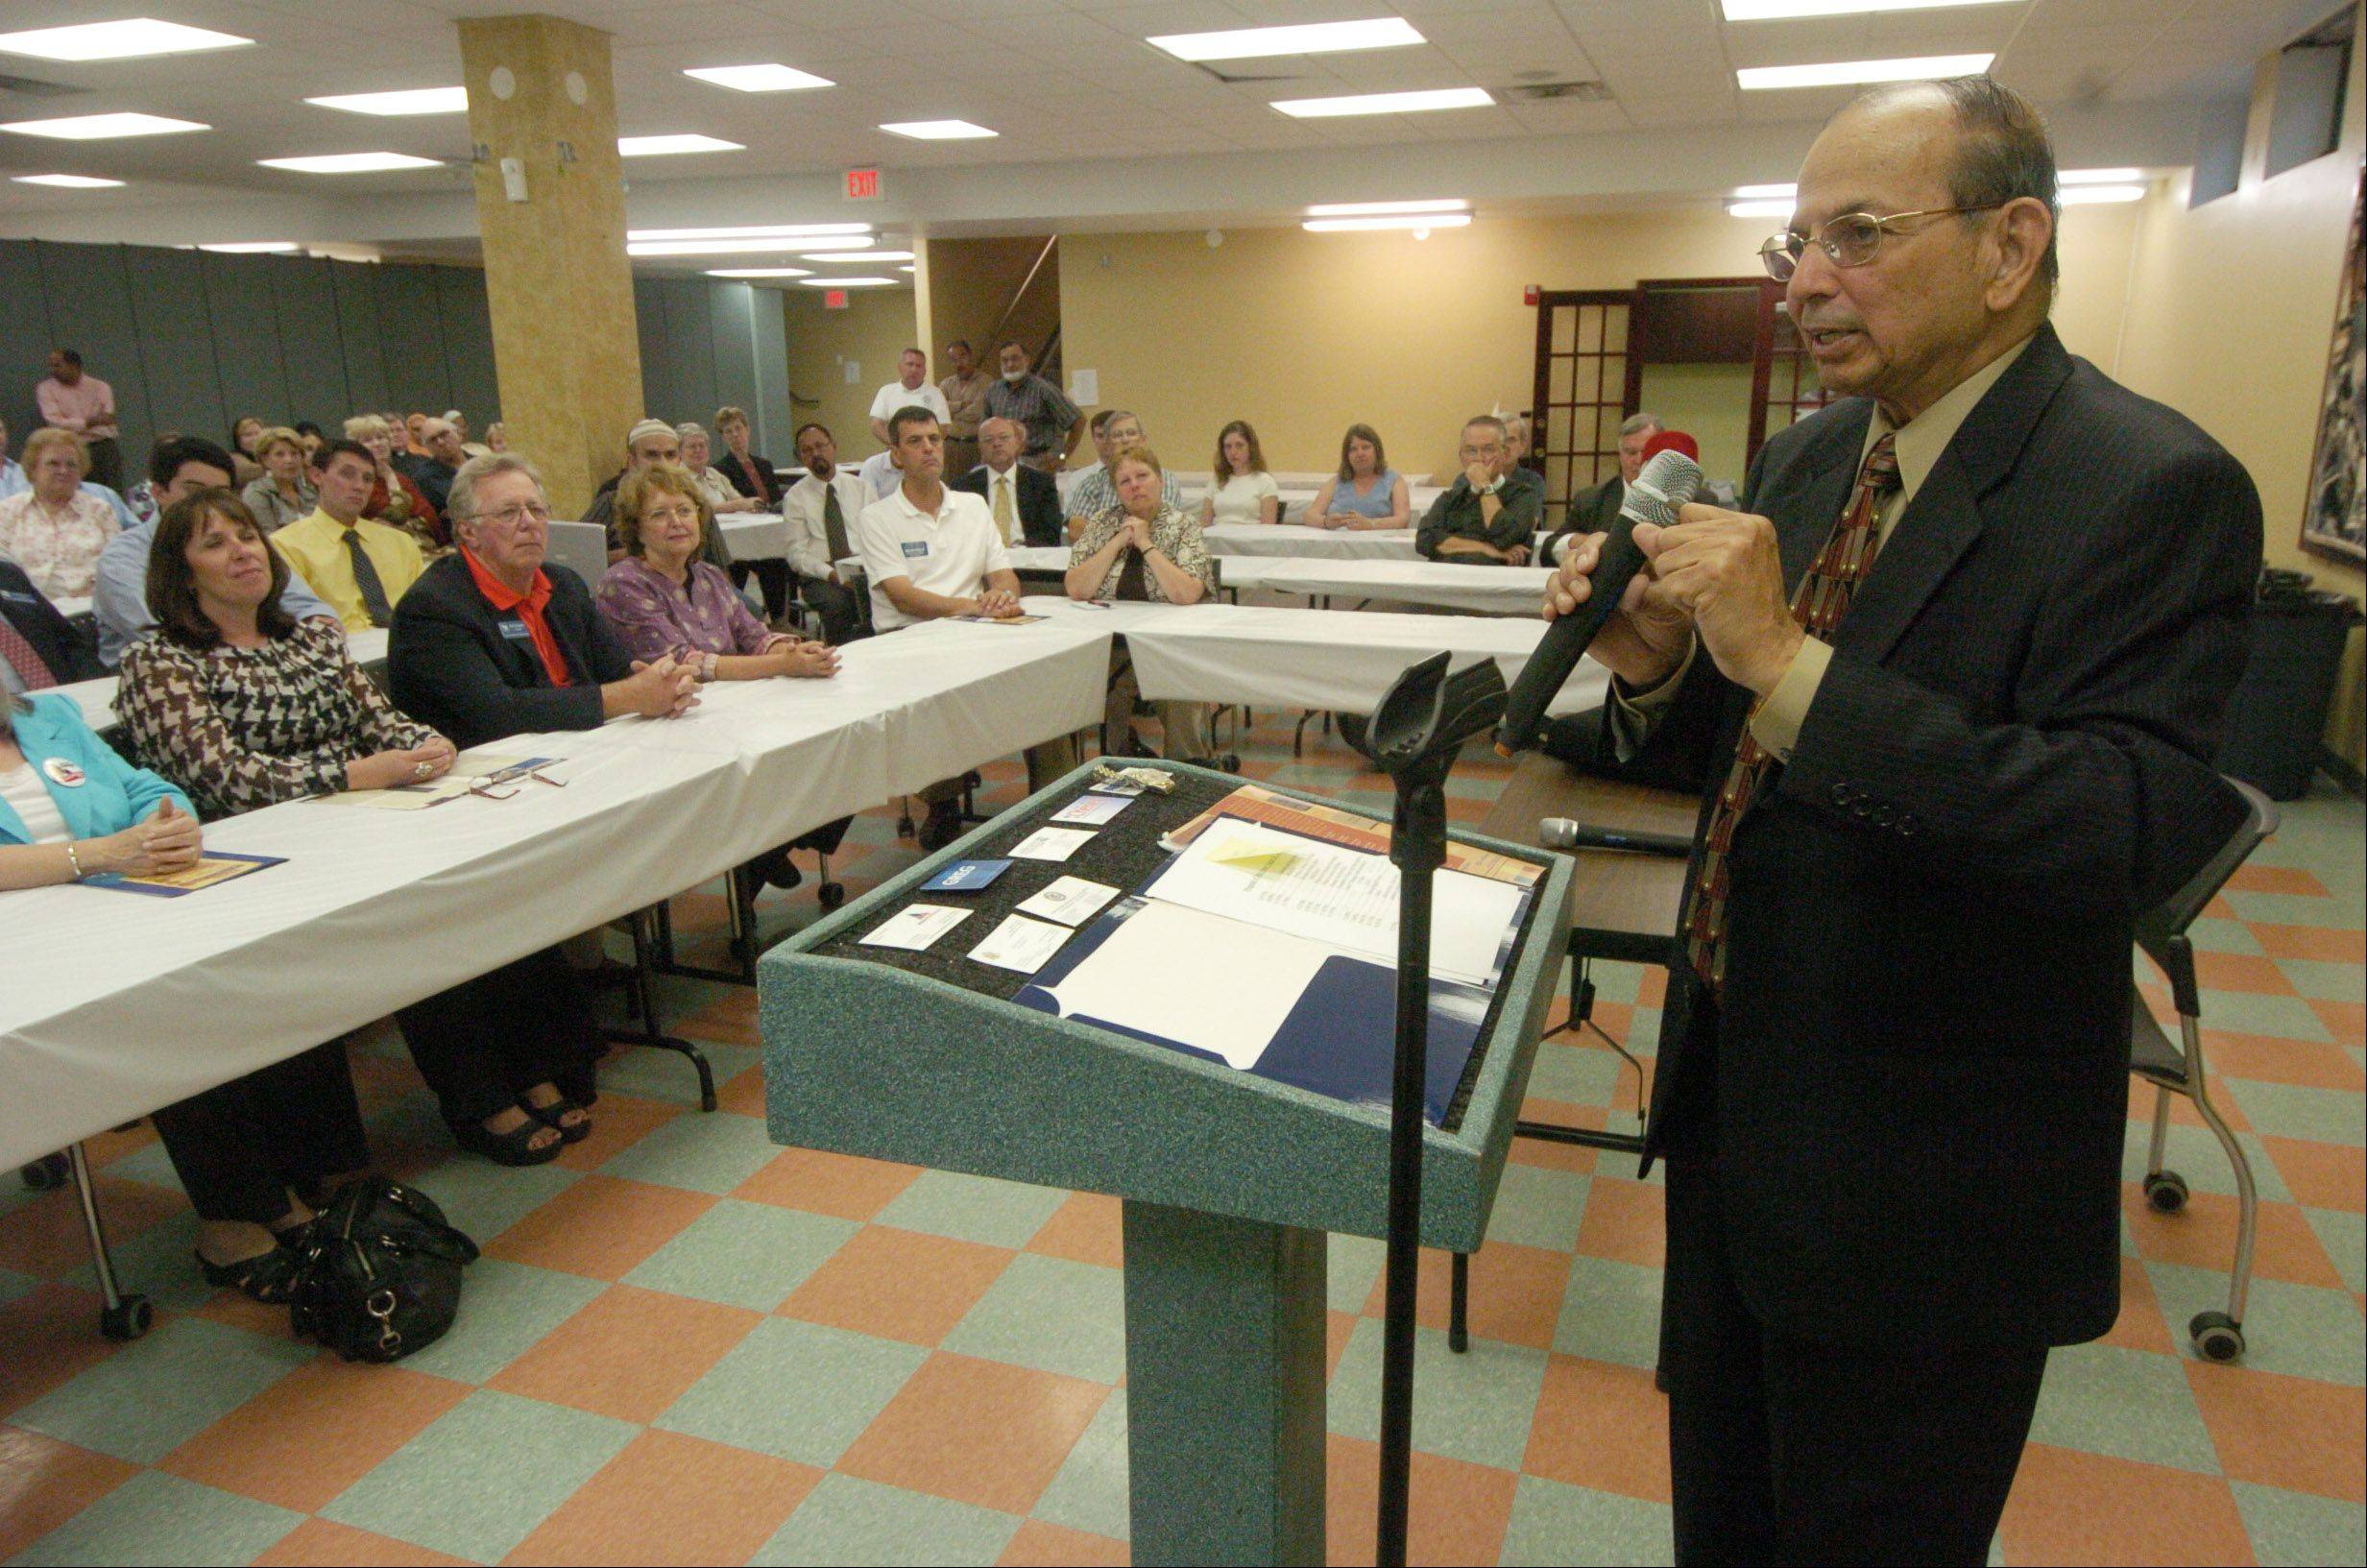 Dr. Khalid Sami speaks to guests at a gathering for an interfaith iftar at Masjid-Al-Huda in Schaumburg.